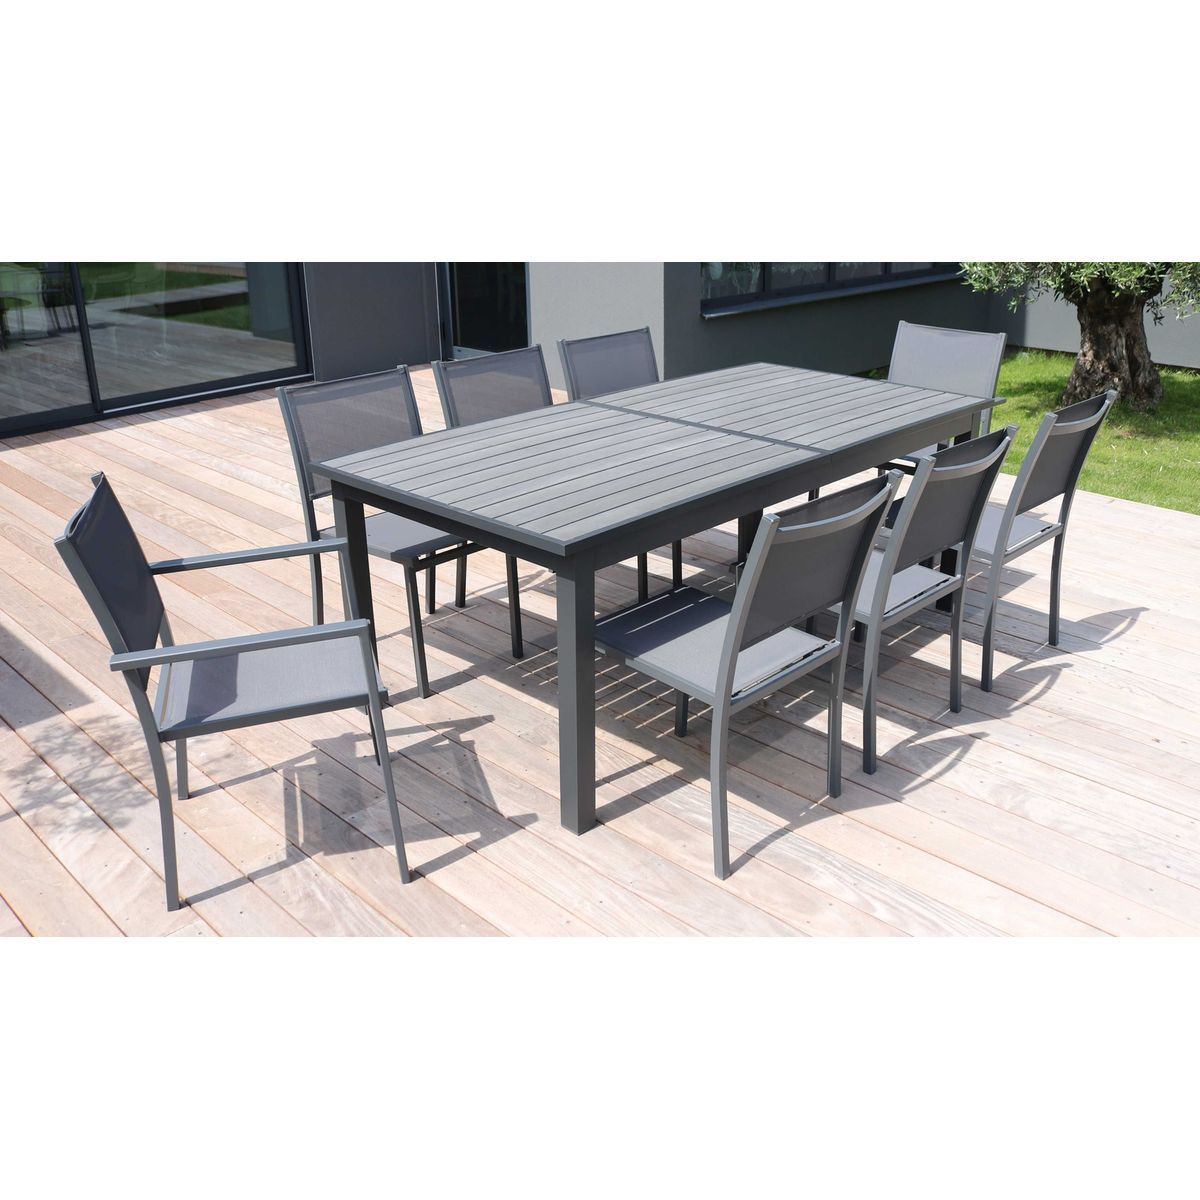 Table De Jardin Extensible 10 Places Aluminium Et Polywood Nice In 2020